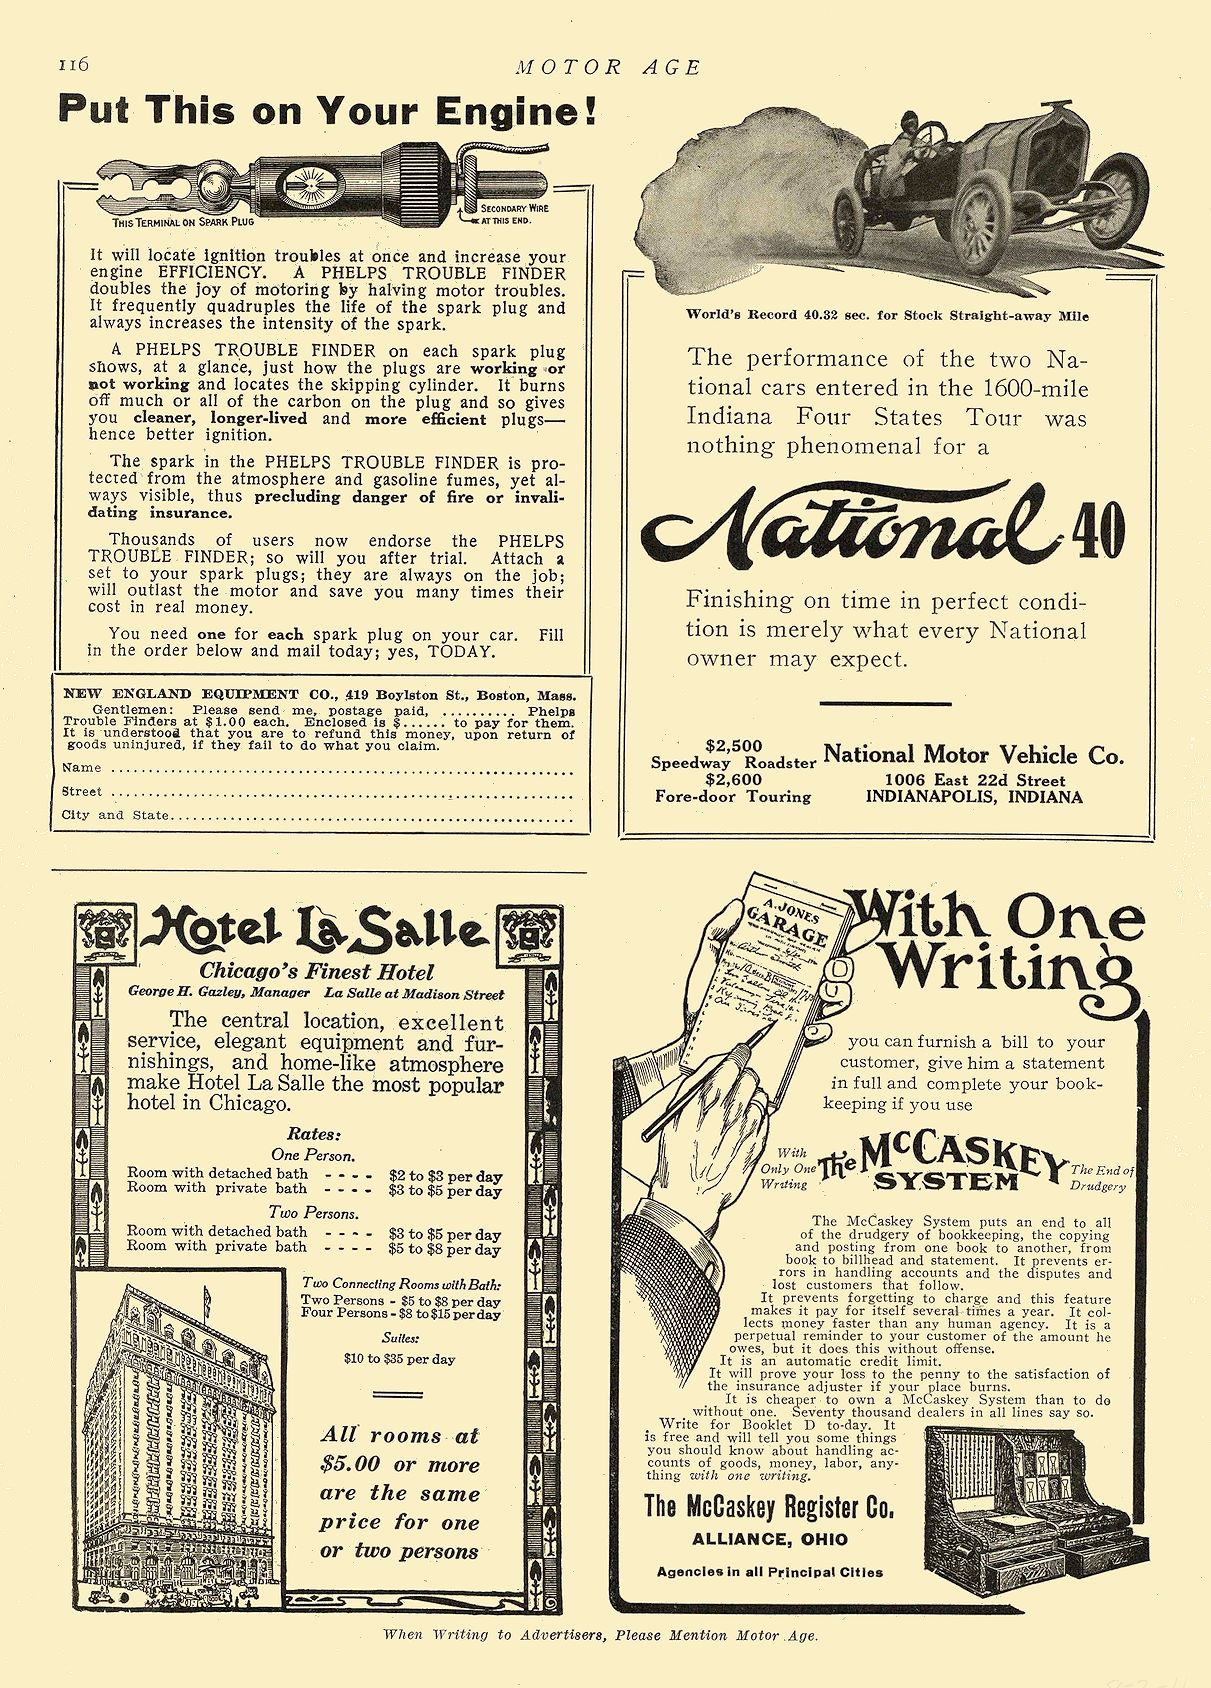 1911 8 3 NATIONAL National 40 National Motor Vehicle Co. Indianapolis, IND MOTOR AGE August 3, 1911 8.25″x12″ page 116